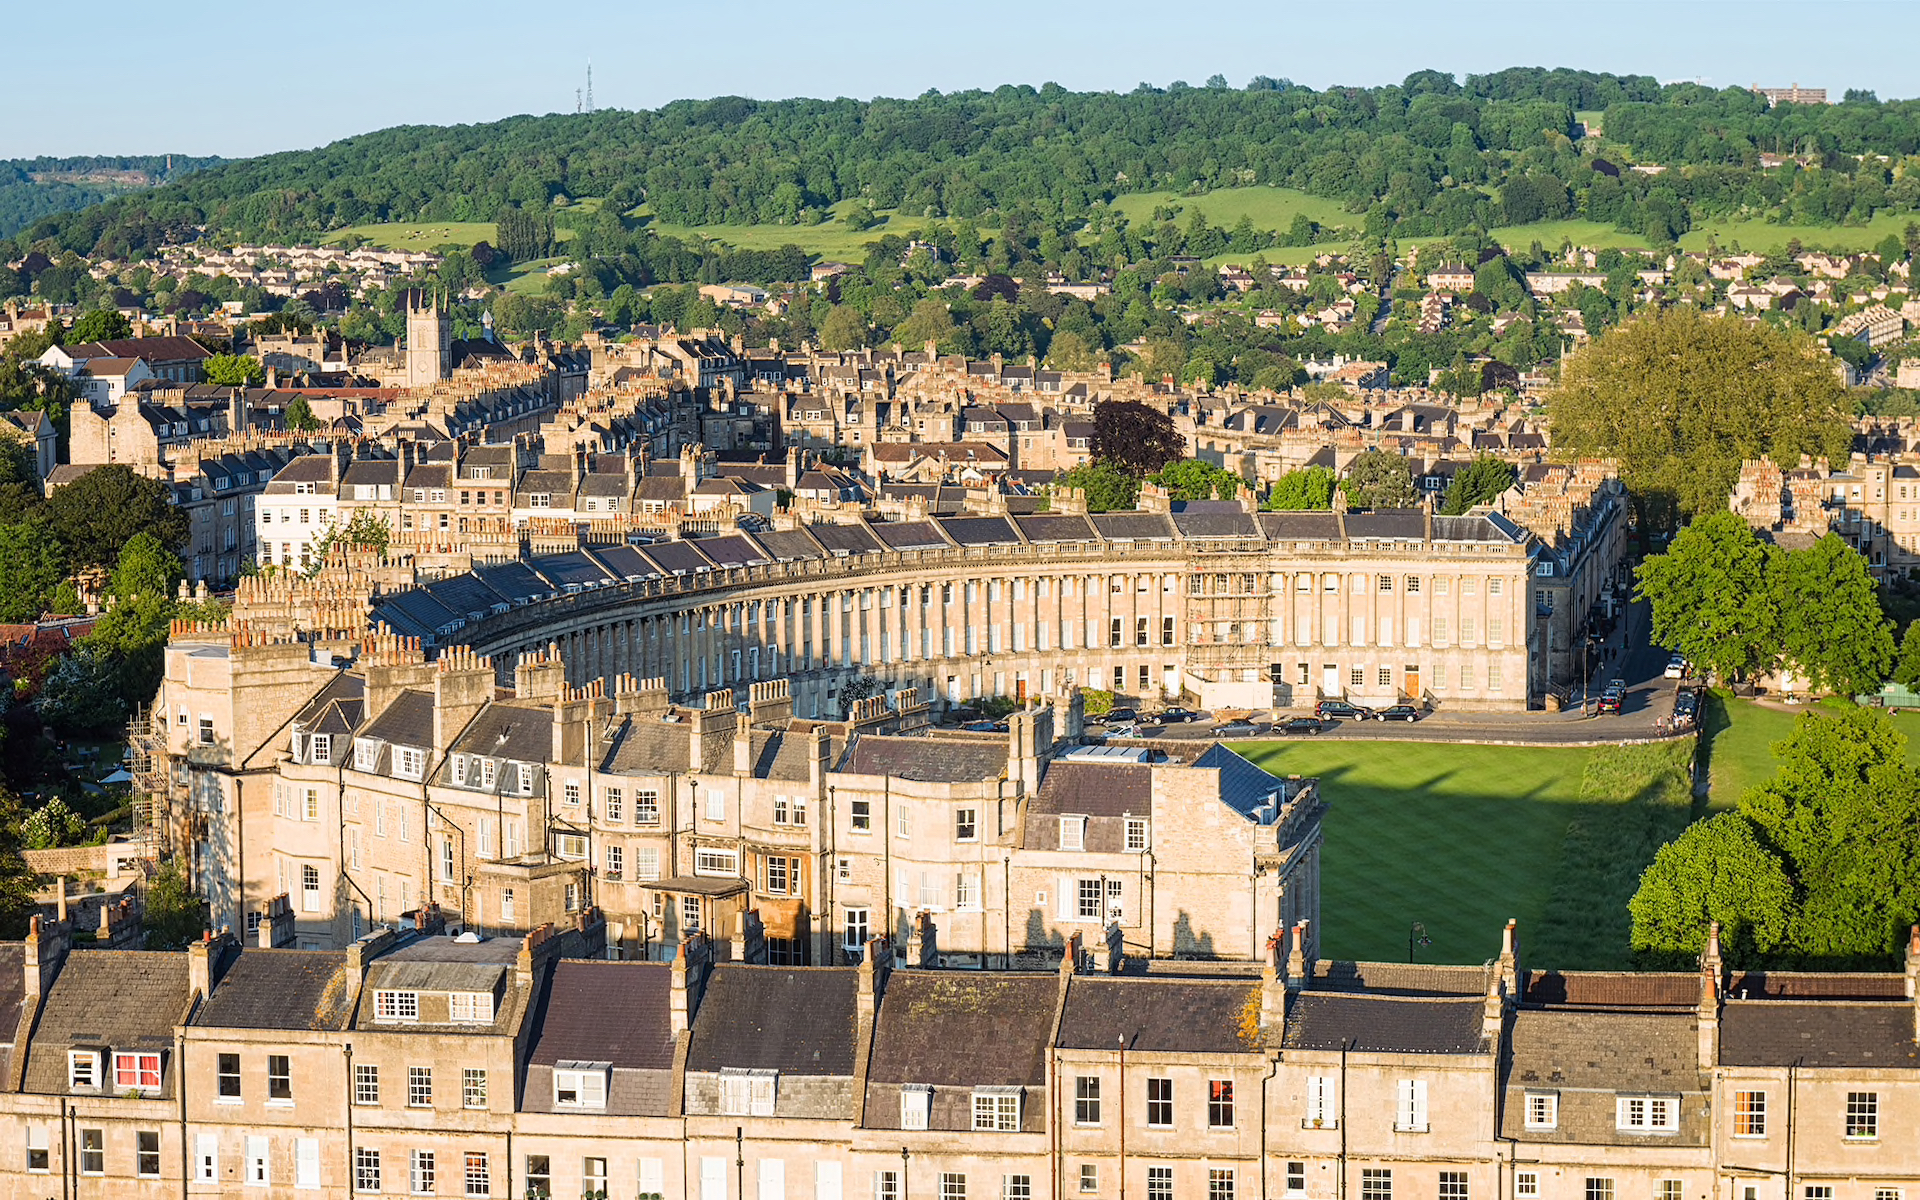 For Townies… - Visit Bath, Bristol and the historic city of WellsBath combines vibrant culture with a rich history and heritage with its famous Roman baths and Spa. Buzzing city Bristol has a thriving art, culture and live music scene. The city of Wells and its Cathedral must be visited.